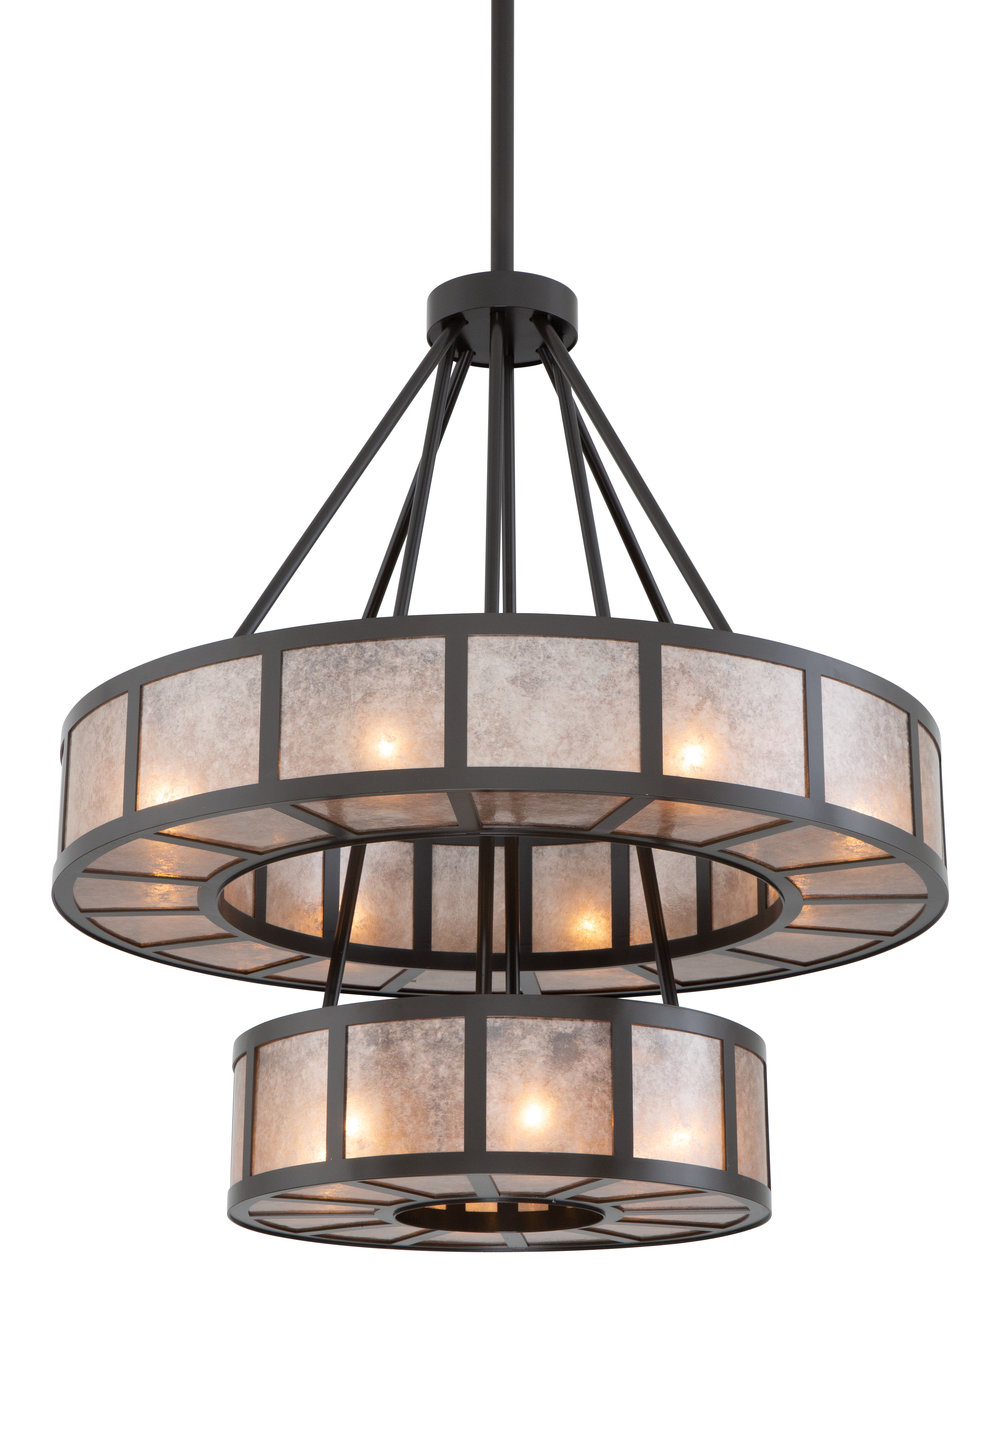 A top selling contemporary chandelier, modified for a porte cochere installation. Custom design #CU-CH2249-17G-A